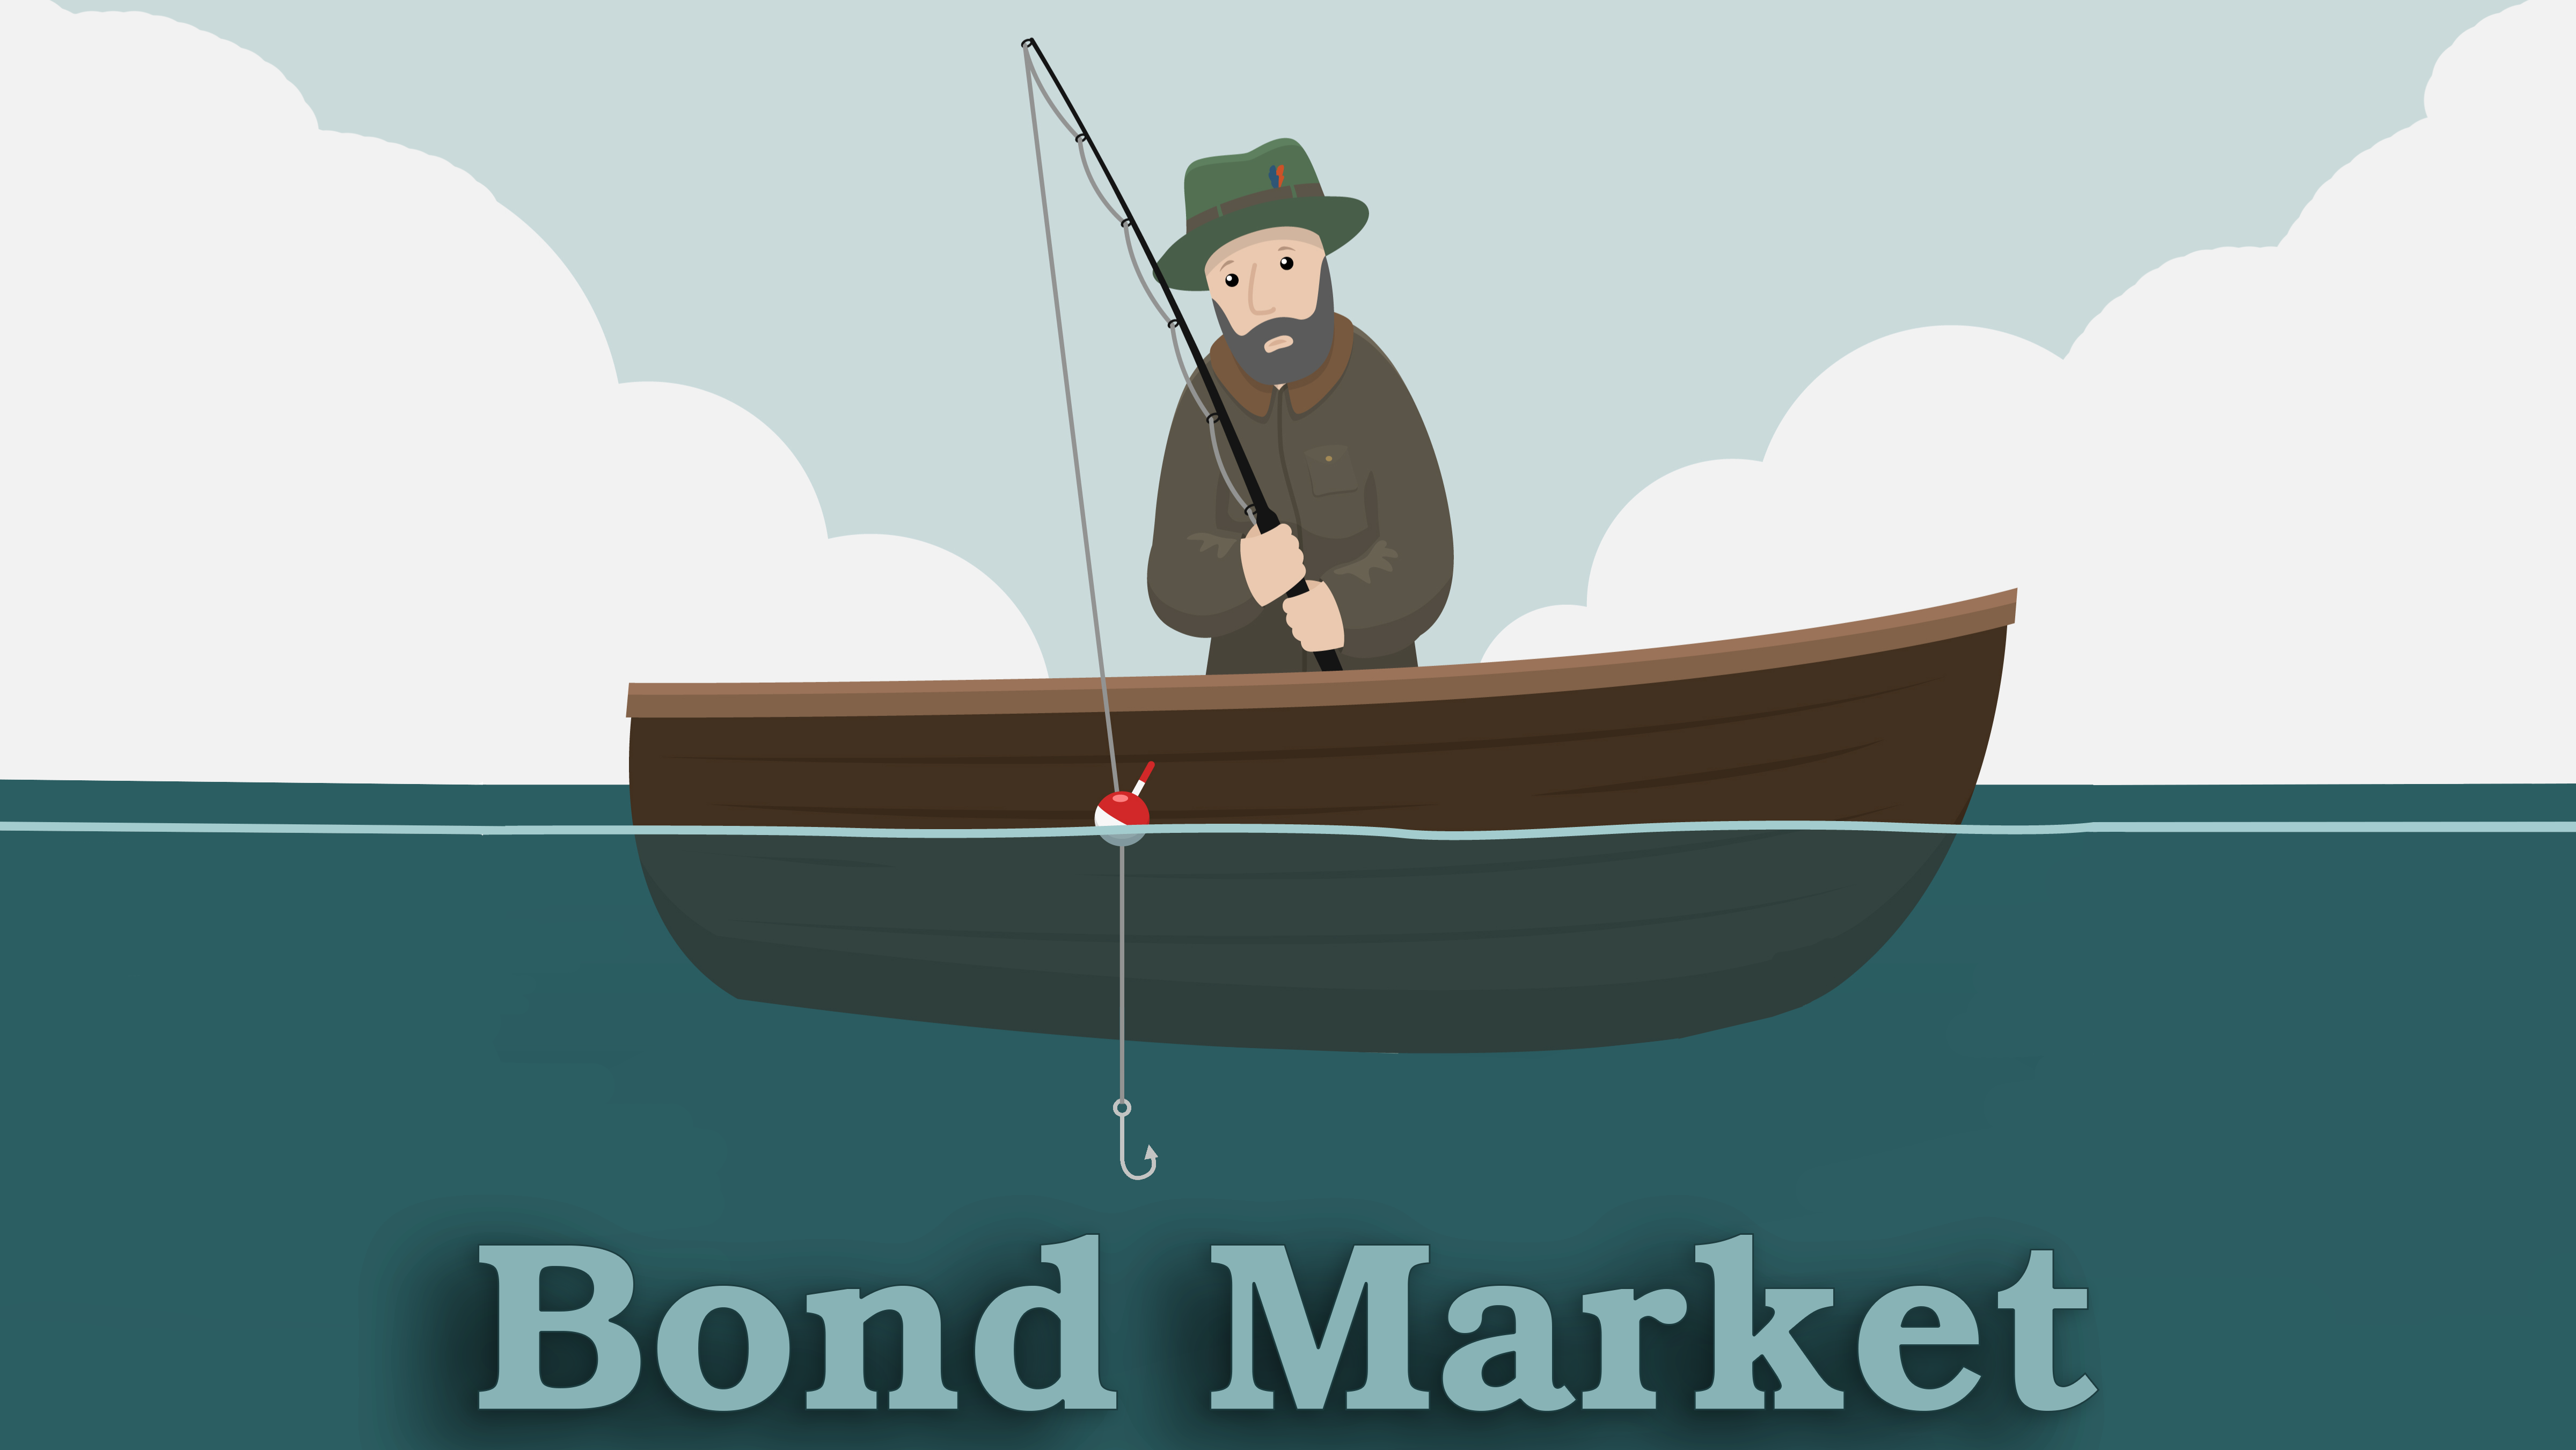 Fishing in the Bond Market